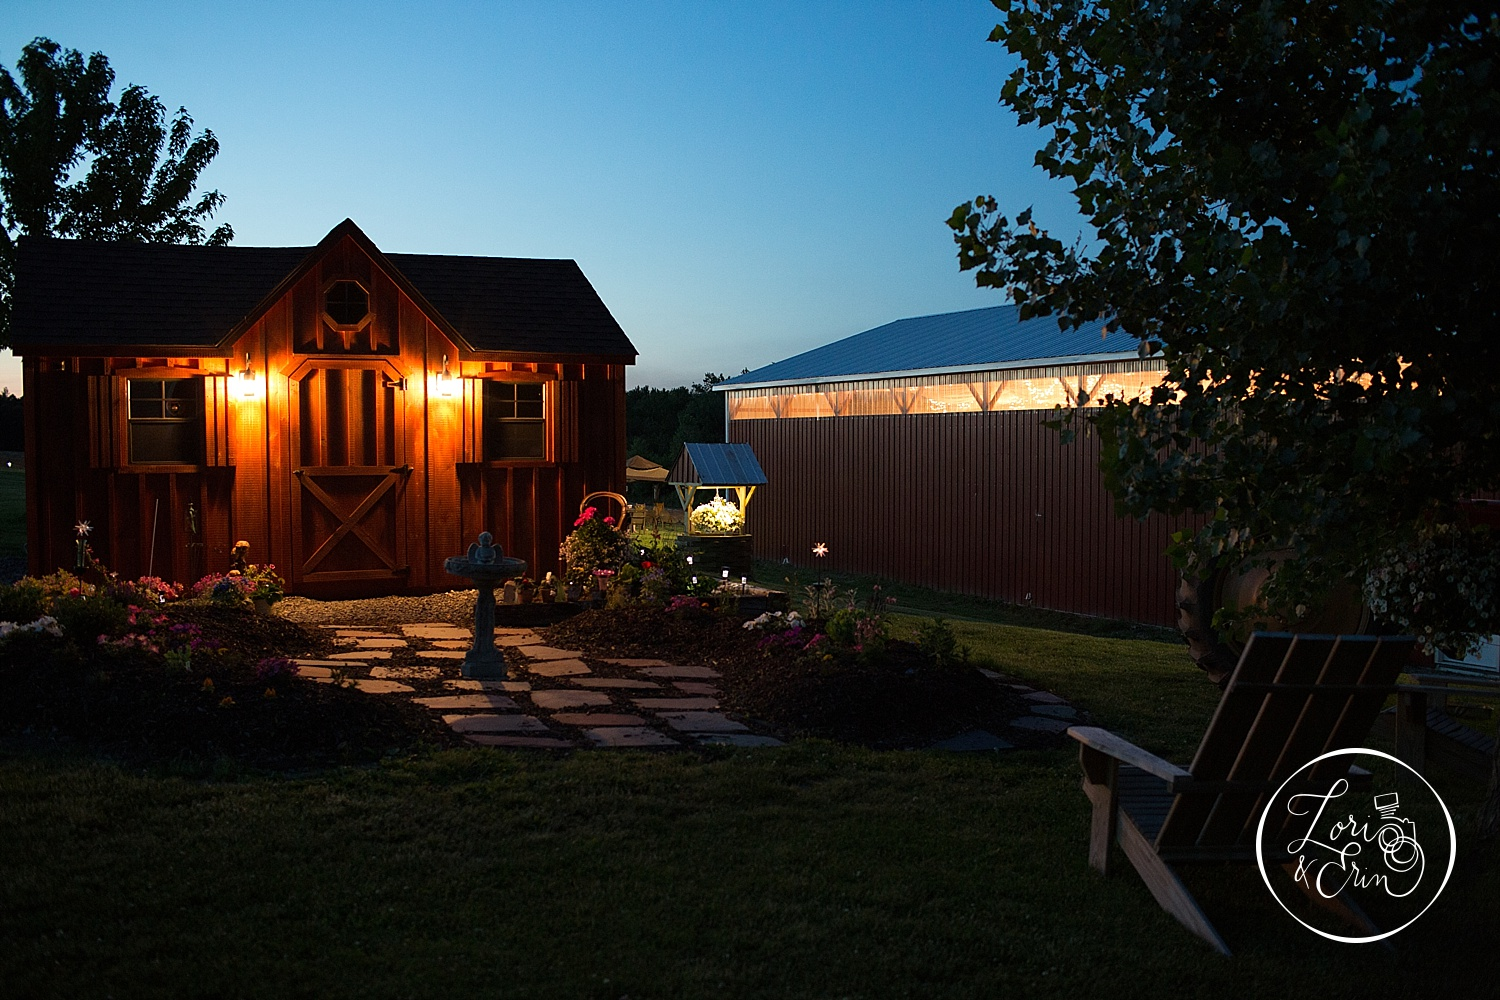 From the shed to the wishing well, it was all built by hand with love.